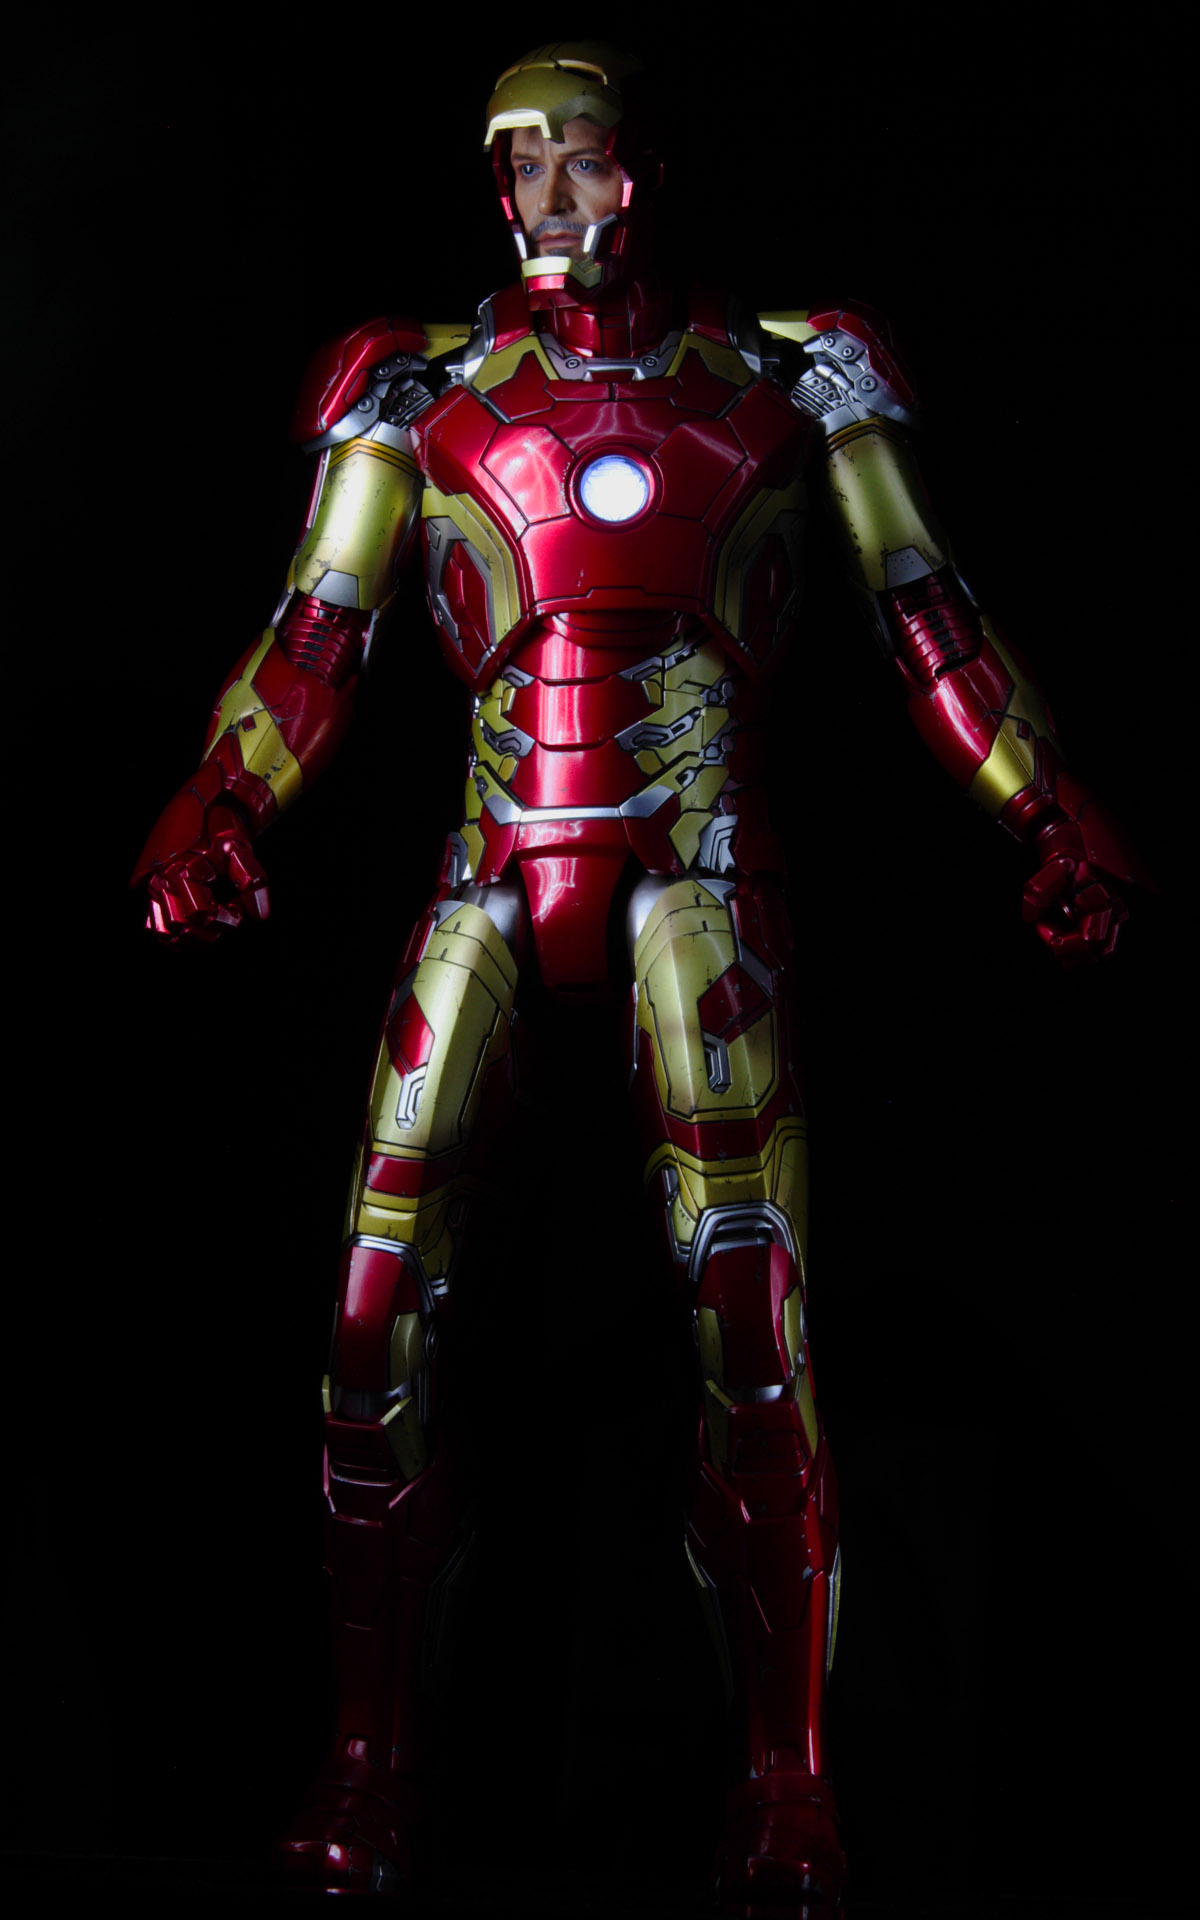 hottoys-avengers-age-of-ultron-iron-man-mark-43-picture08